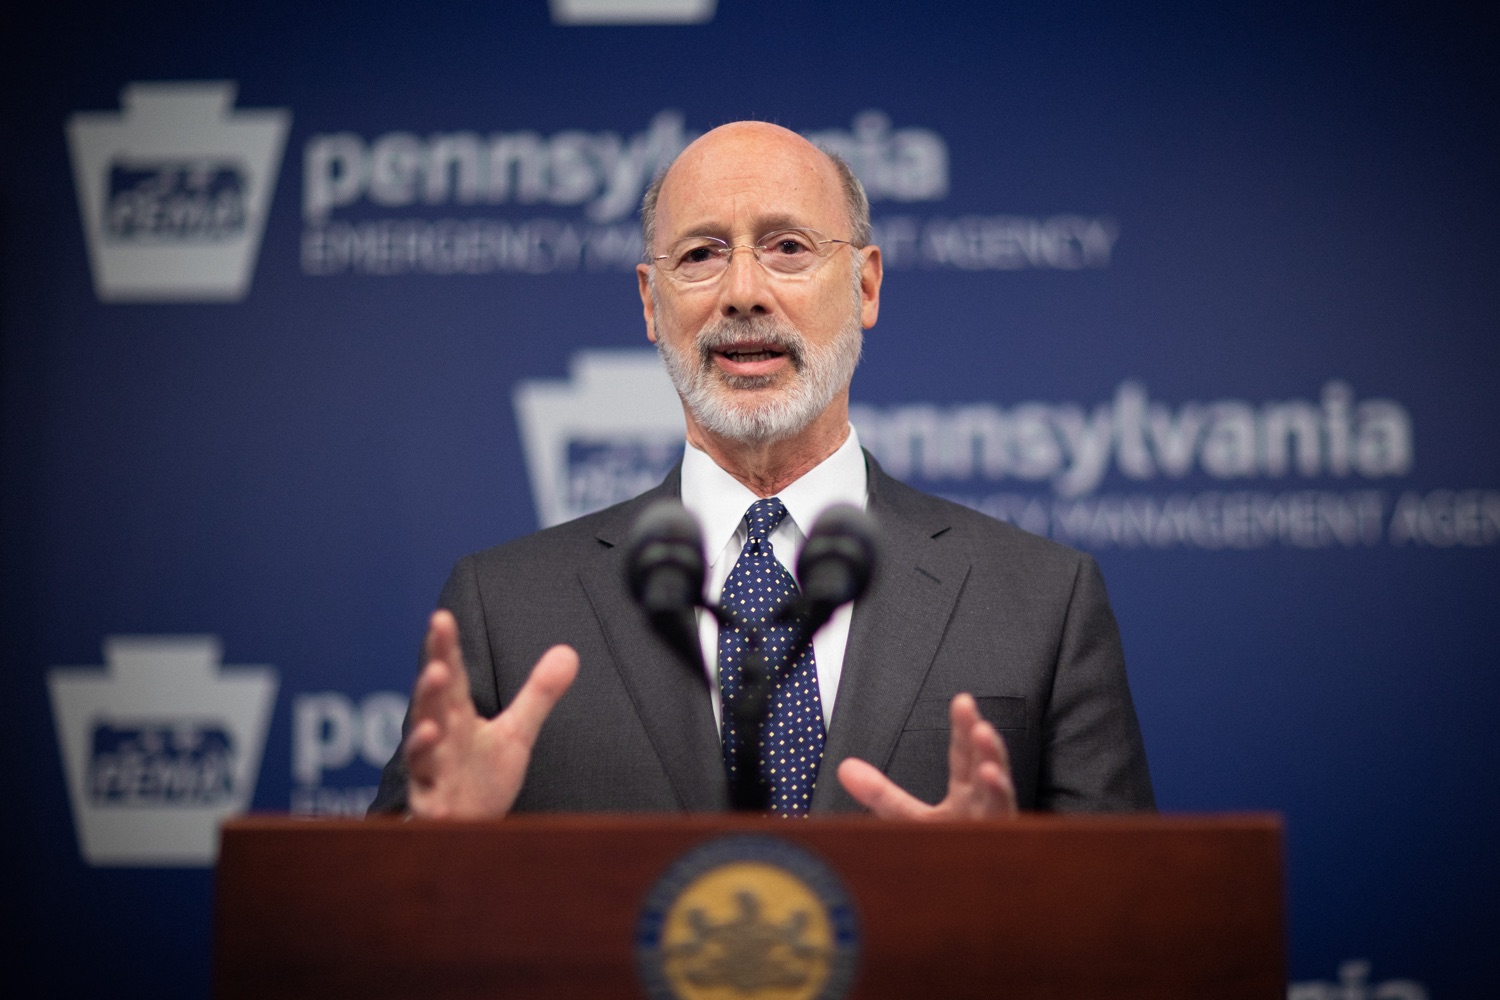 """<a href=""""https://filesource.wostreaming.net/commonwealthofpa/photo/17888_gov_covid19_update_dz_0001.jpg"""" target=""""_blank"""">⇣Download Photo<br></a>Governor Tom Wolf  speaking to reporters. Governor Tom Wolf and Secretary of Health Dr. Rachel Levine provided an update on the coronavirus known as COVID-19 and outline ongoing efforts to mitigate the virus in Pennsylvania. The Department of Health anticipates that there will be more Pennsylvanians who test positive for COVID-19 in the coming days and weeks and it is important for residents to know the commonwealth is prepared and to be prepared themselves. People have a higher chance of testing positive for COVID-19 if they have traveled to a country or state with known community outbreaks or have come in contact with someone who has the virus. The Wolf Administration is working with the health care community across Pennsylvania to keep them informed, consult on patient testing, and ensure they have the resources they need to care for patients. .March 16, 2020  Harrisburg Pa."""